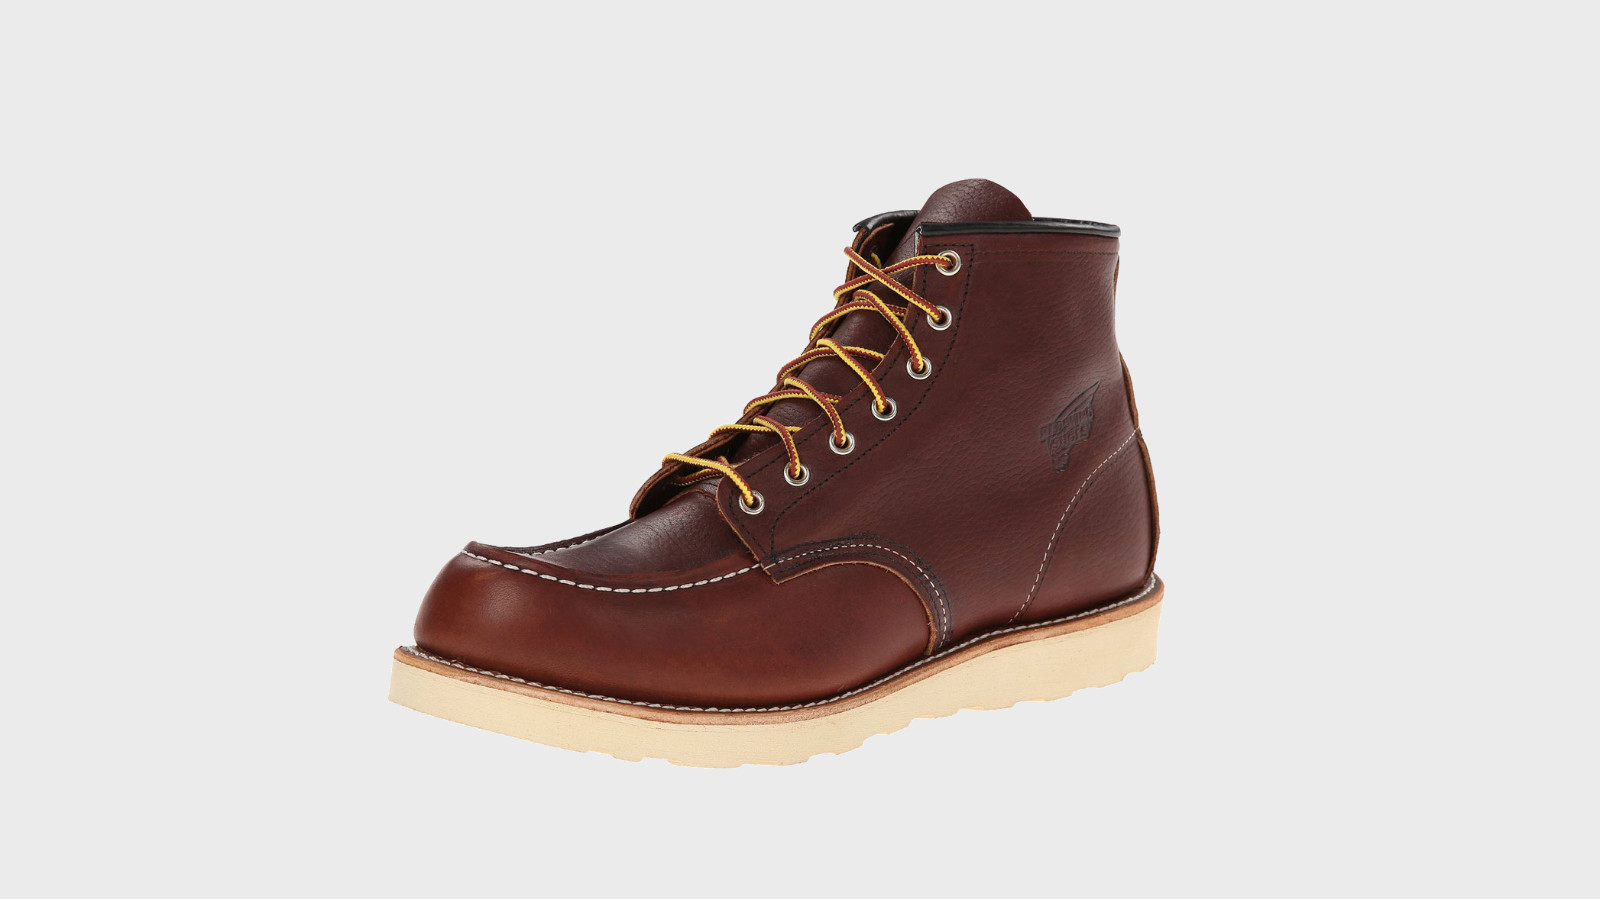 Red Wing Heritage Men's Winter Fashion